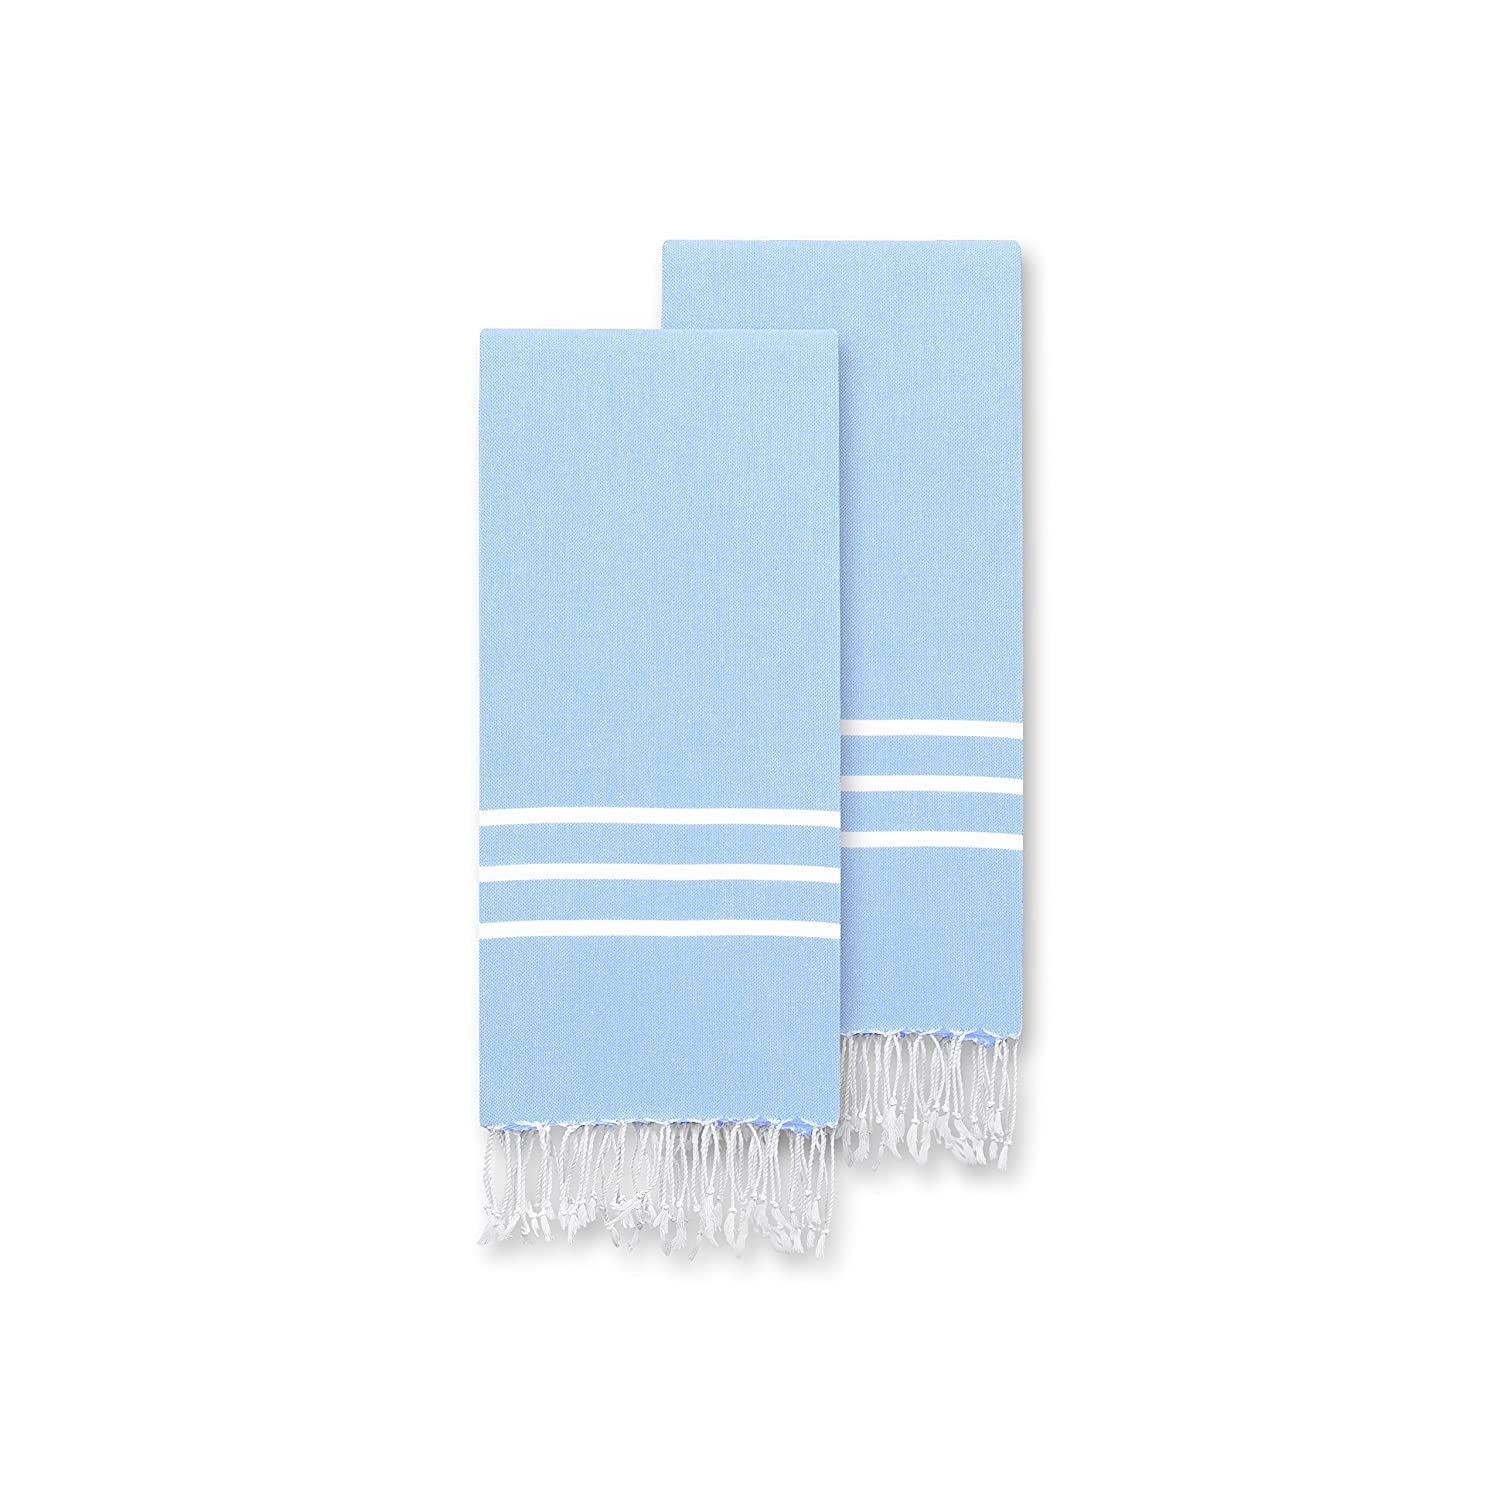 2 Piece Turkish Cotton Hand/Kitchen Sky Blue Towel (Set of 2), Nepkin, Handcrafted, Solid Color, Stripe Pattern, Eco-Friendly Design, Lightweight, Quick Dry, Versatile, Beautifully Finished